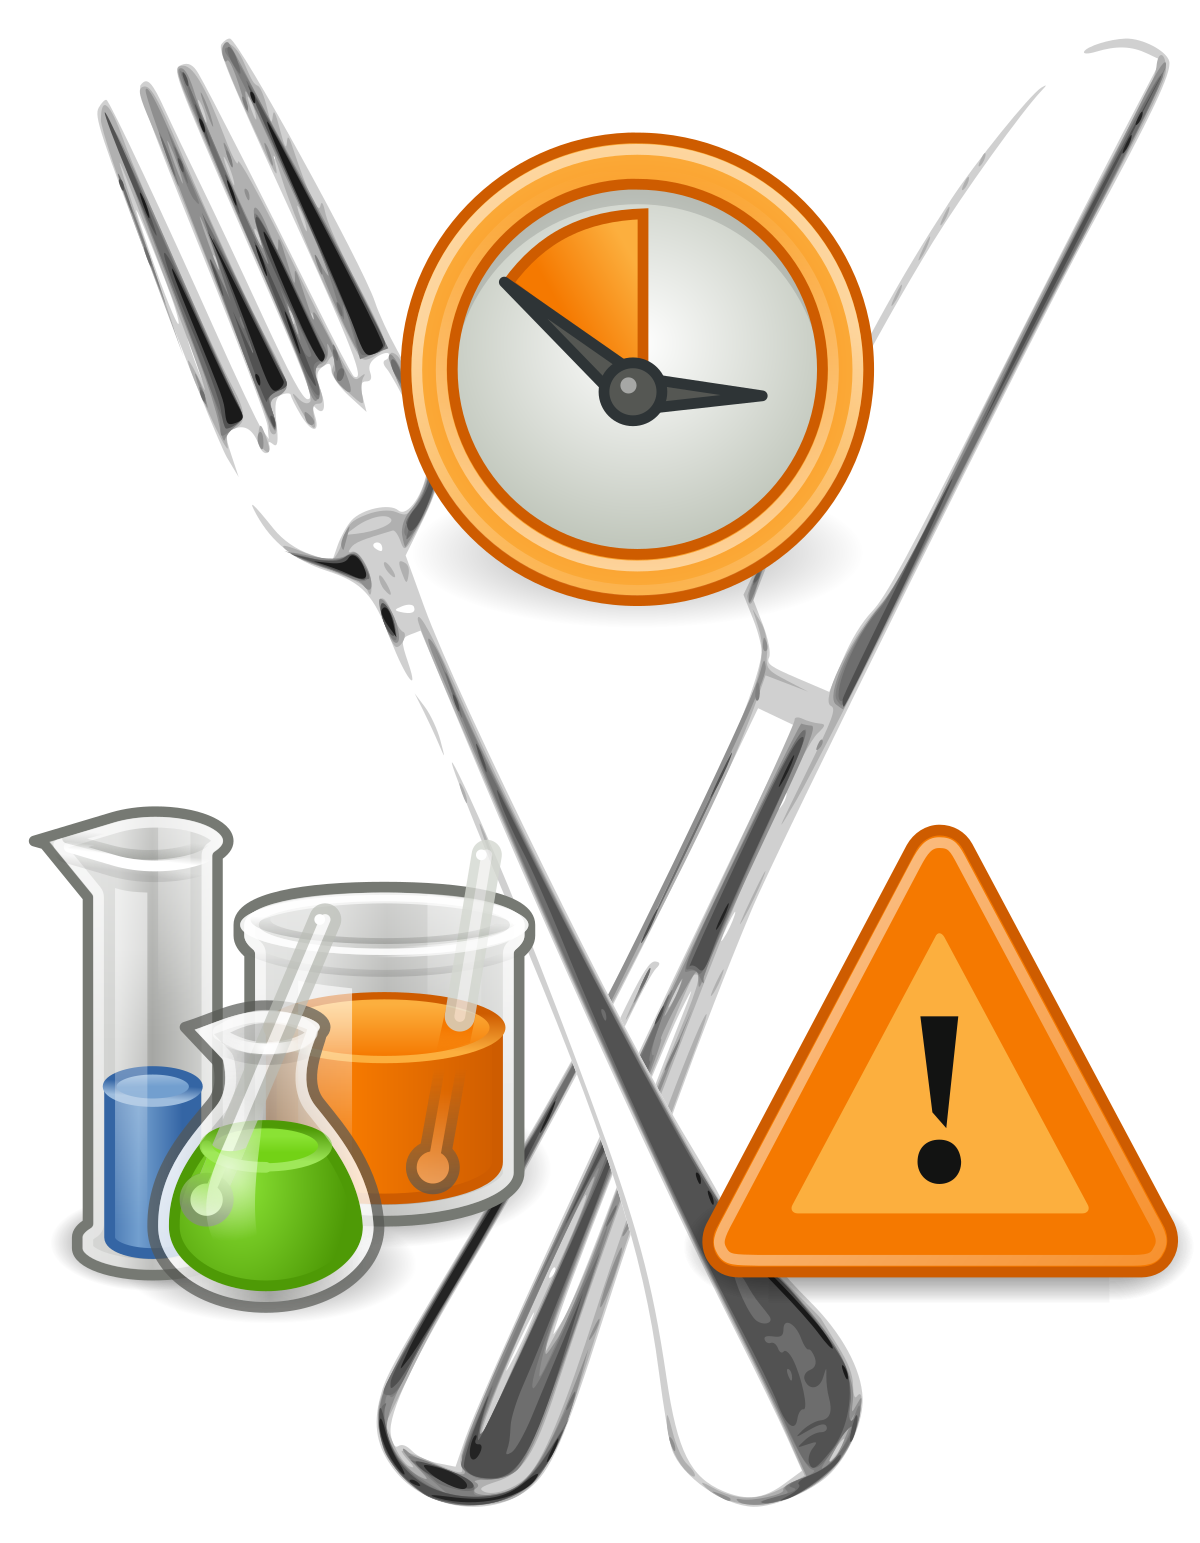 Cold chain wikipedia . Cooking clipart food technology